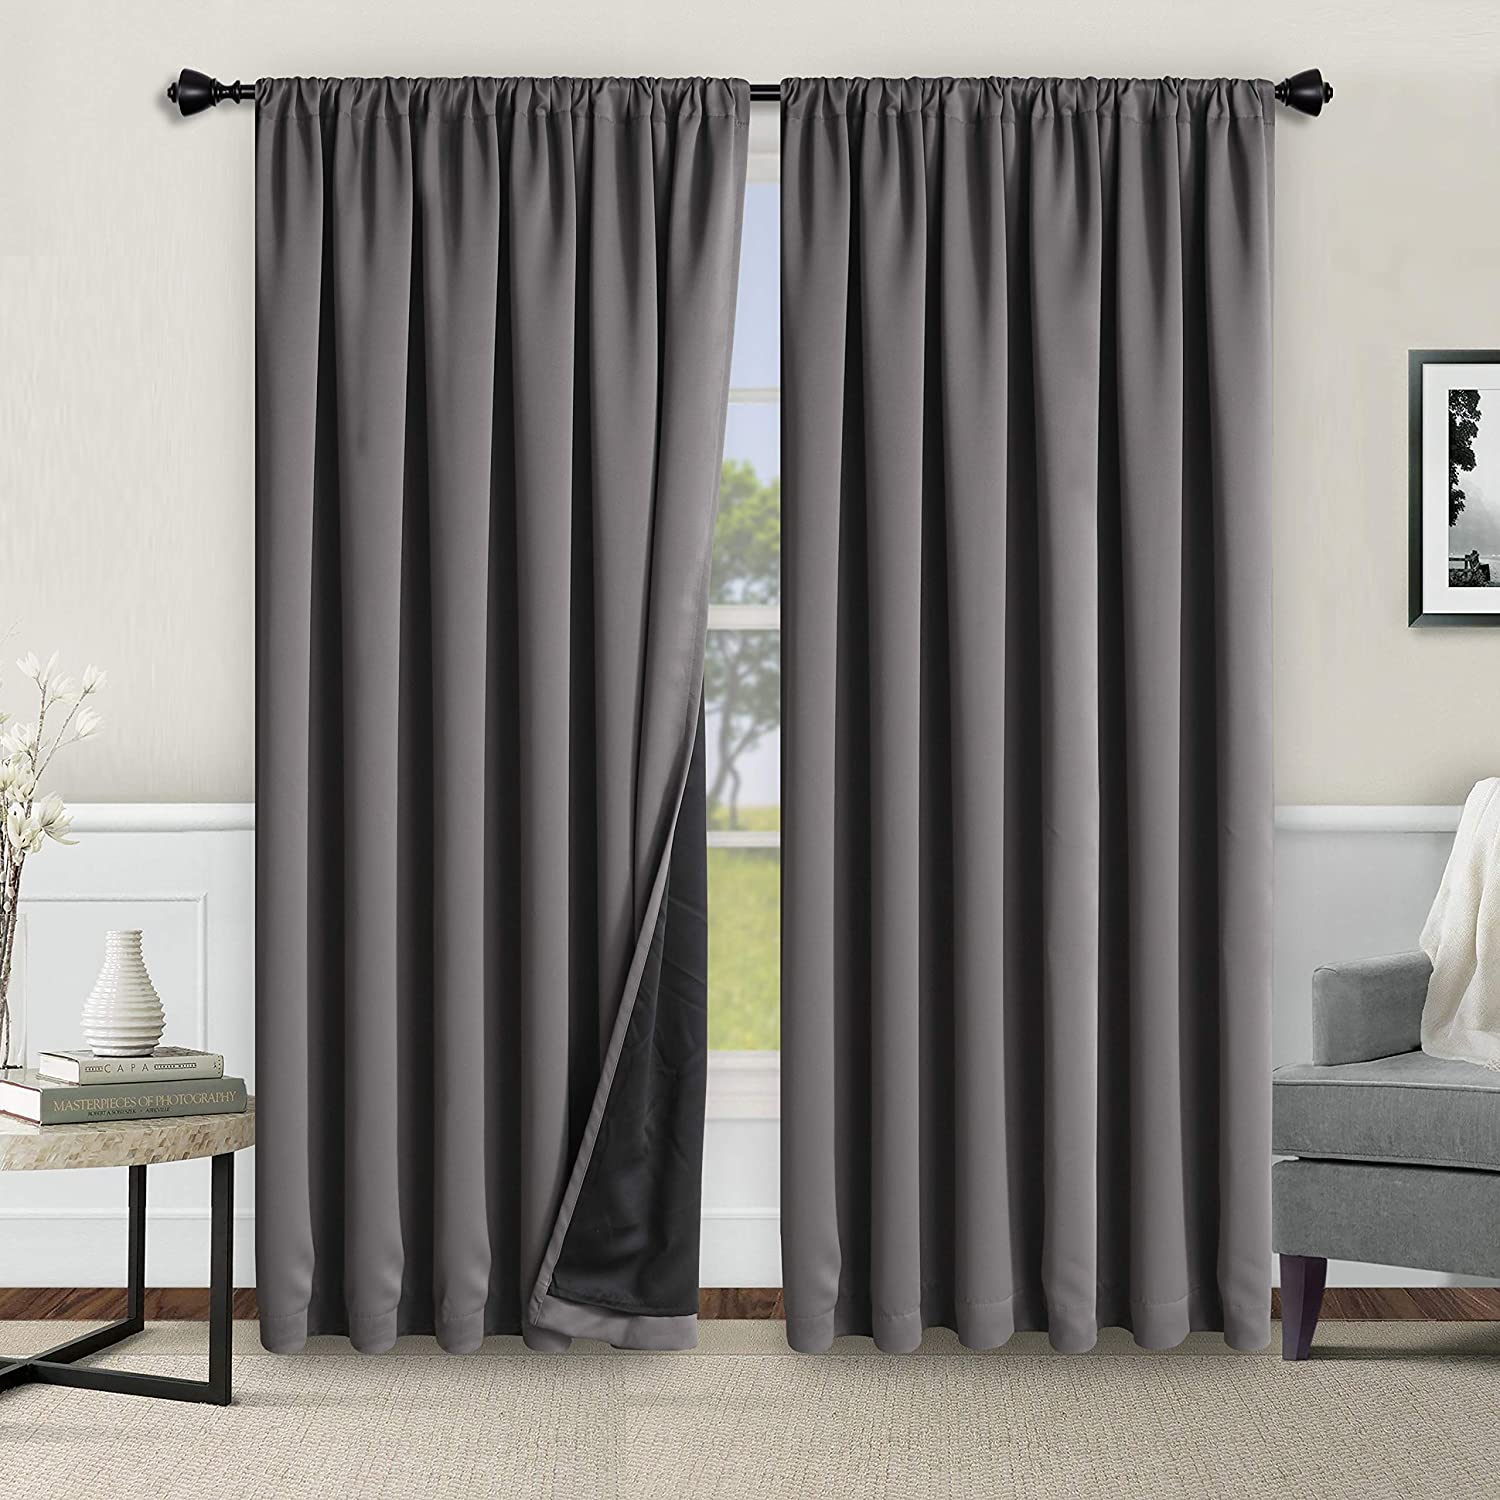 WONTEX 100% Grey Blackout Curtains for Bedroom 52 x 84 inches Long - Thermal Insulated, Noise Reducing, Sun Blocking Lined Rod Pocket Window Curtain Panels for Living Room, Set of 2 Winter Curtains